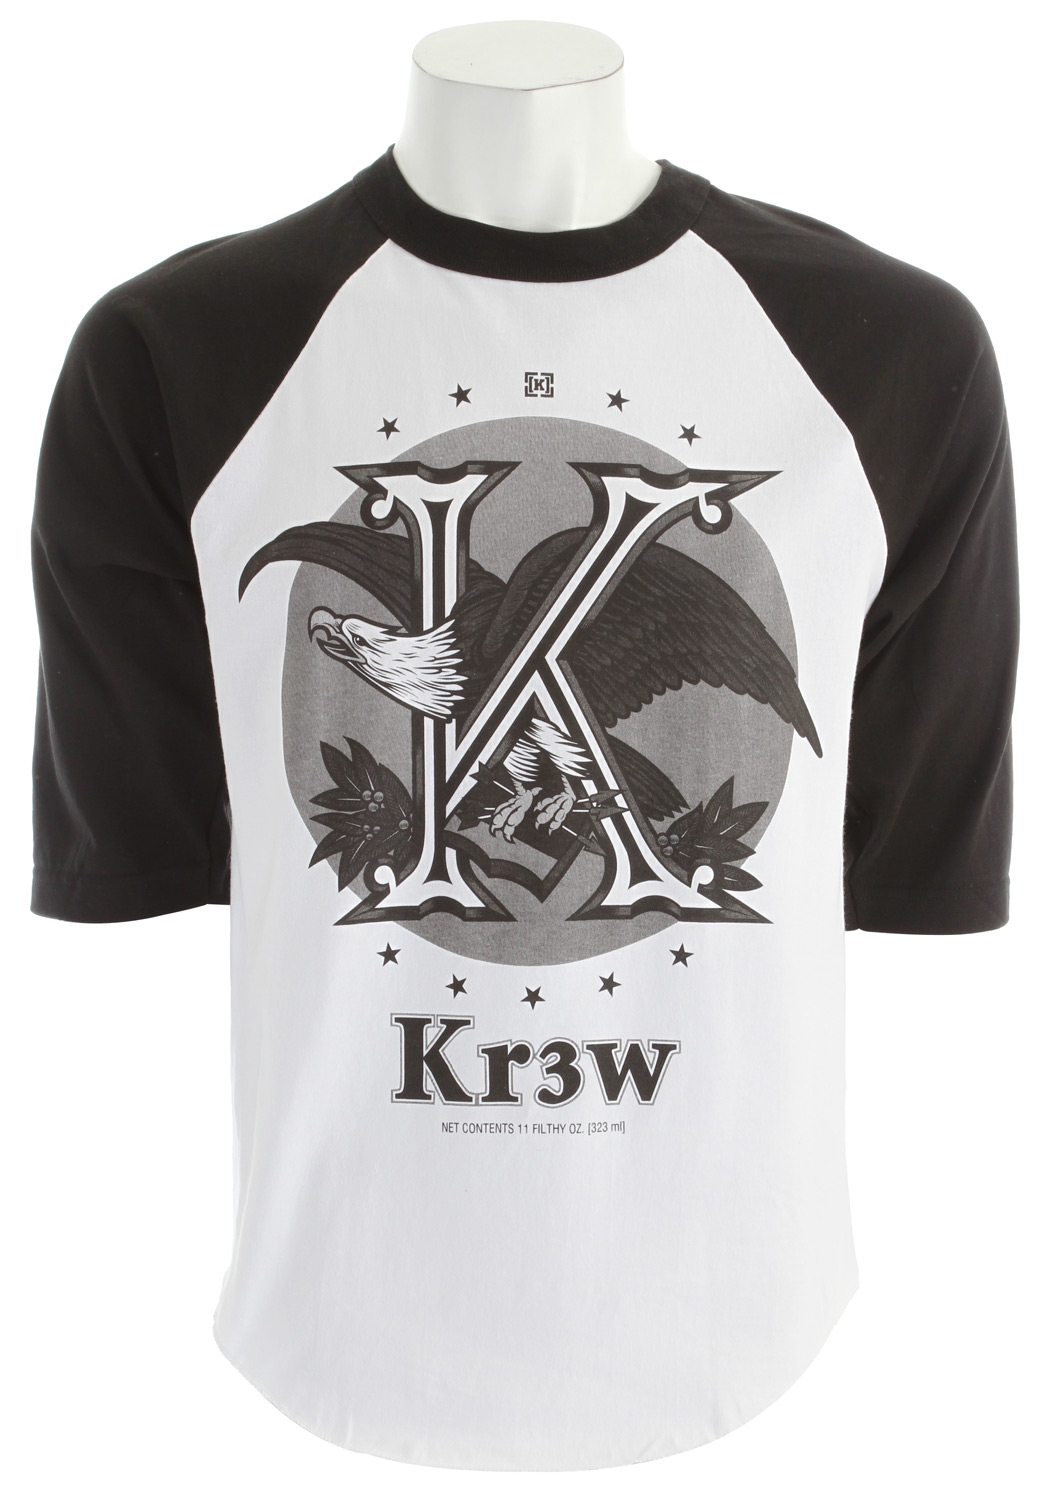 Key Features of The KR3W Cold One 3/4 Reglan T-Shirt: Regular Fit Crew Neck Short Sleeve 100% Cotton Regular Fit Bottom hem flag label - $25.00